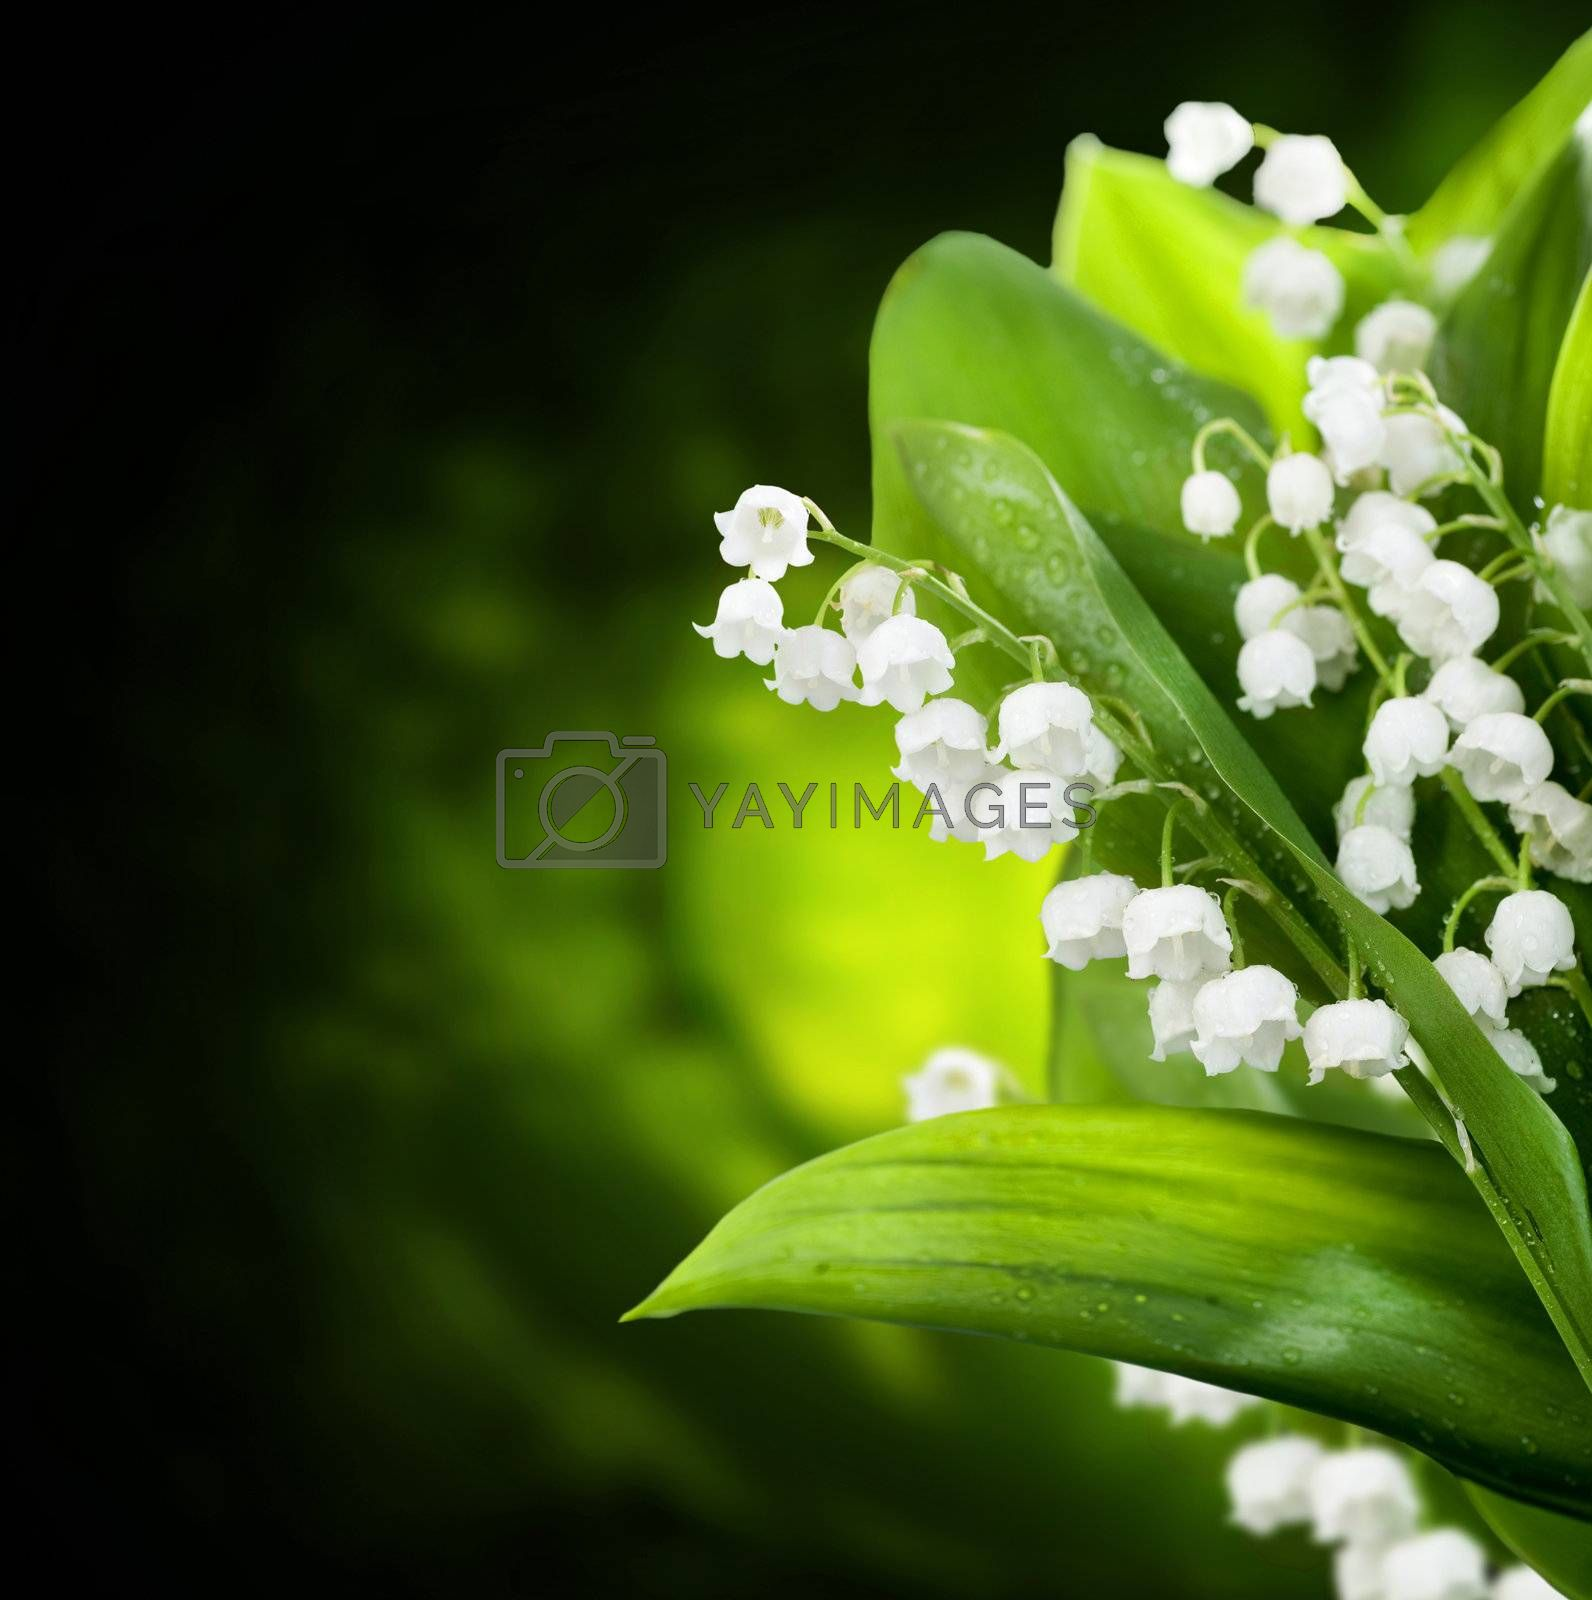 Lily-of-the-valley Flowers Design  by SubbotinaA